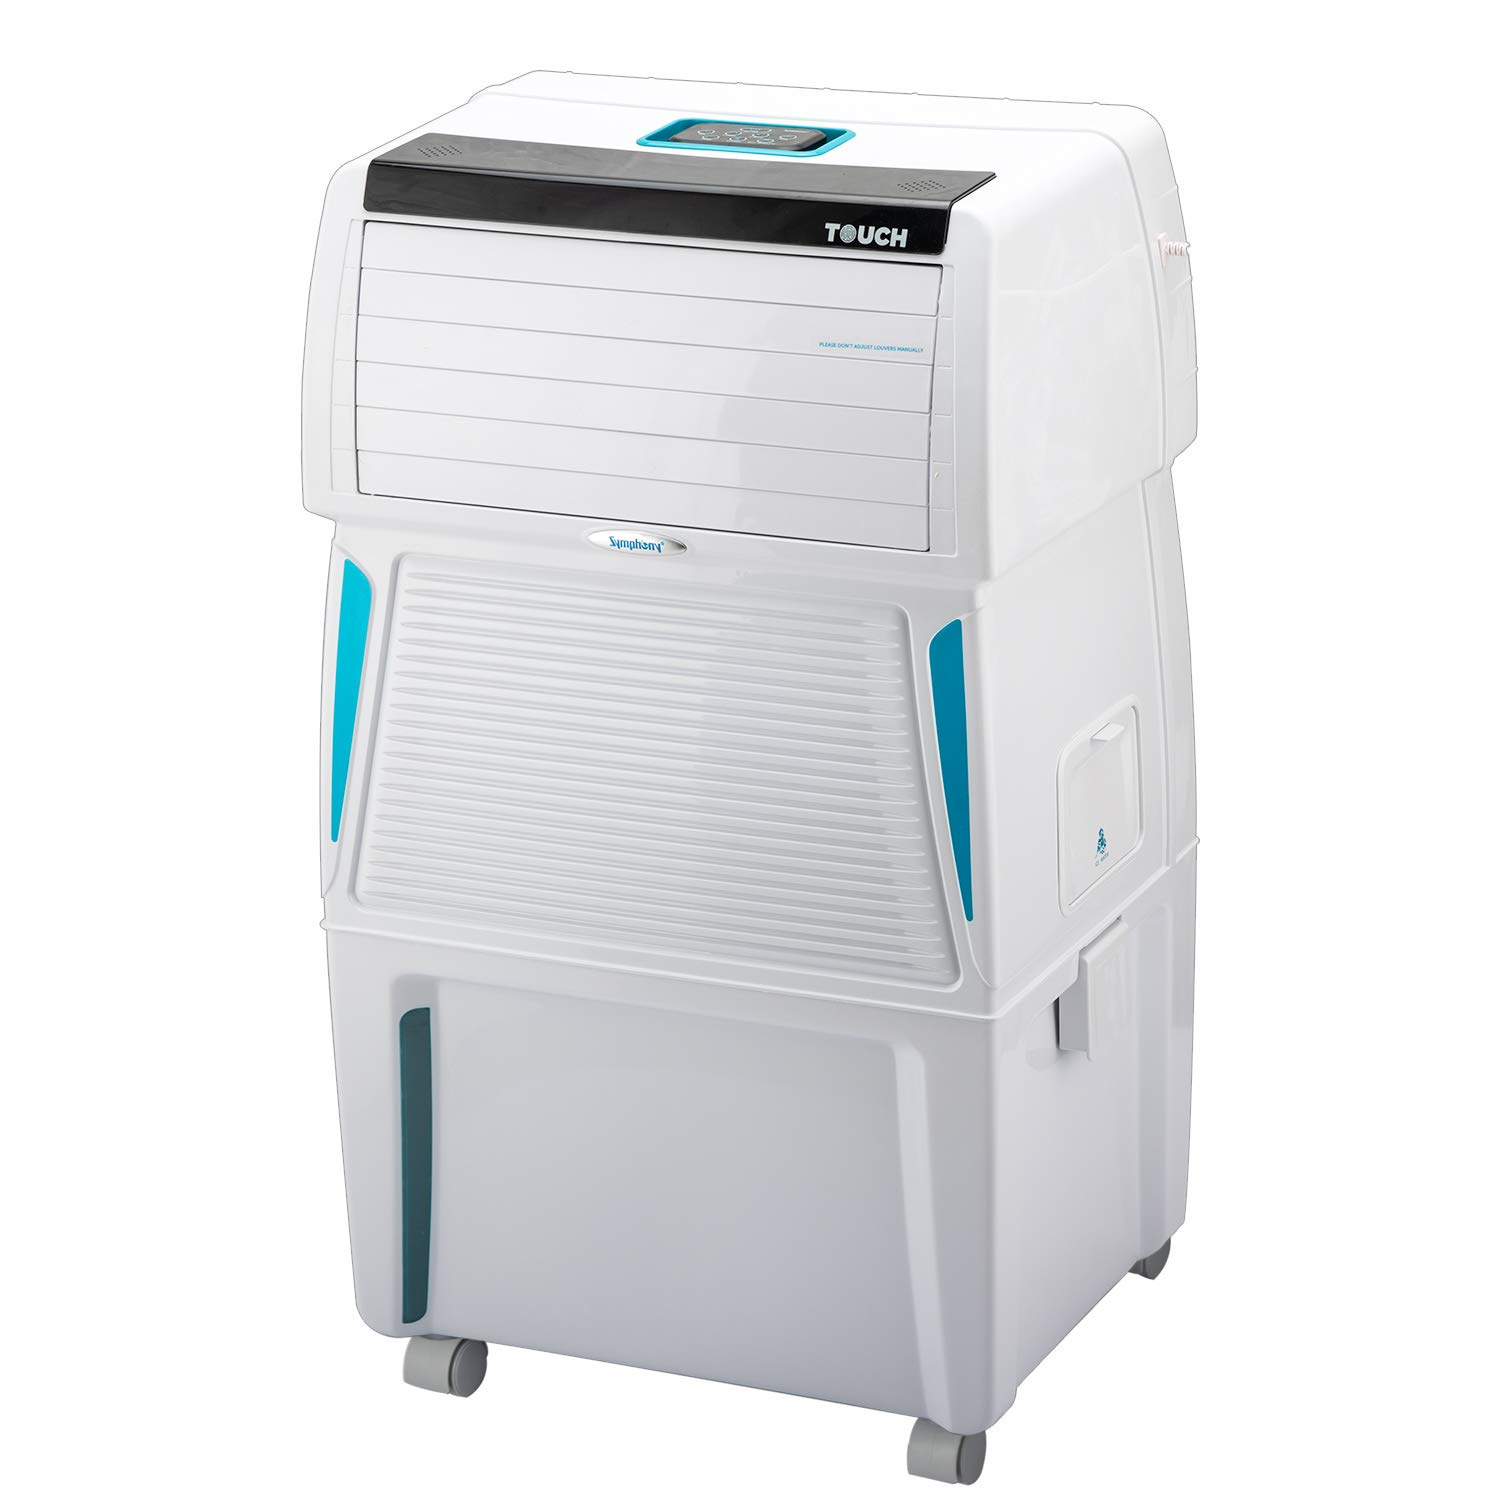 8. Symphony Touch Air Cooler